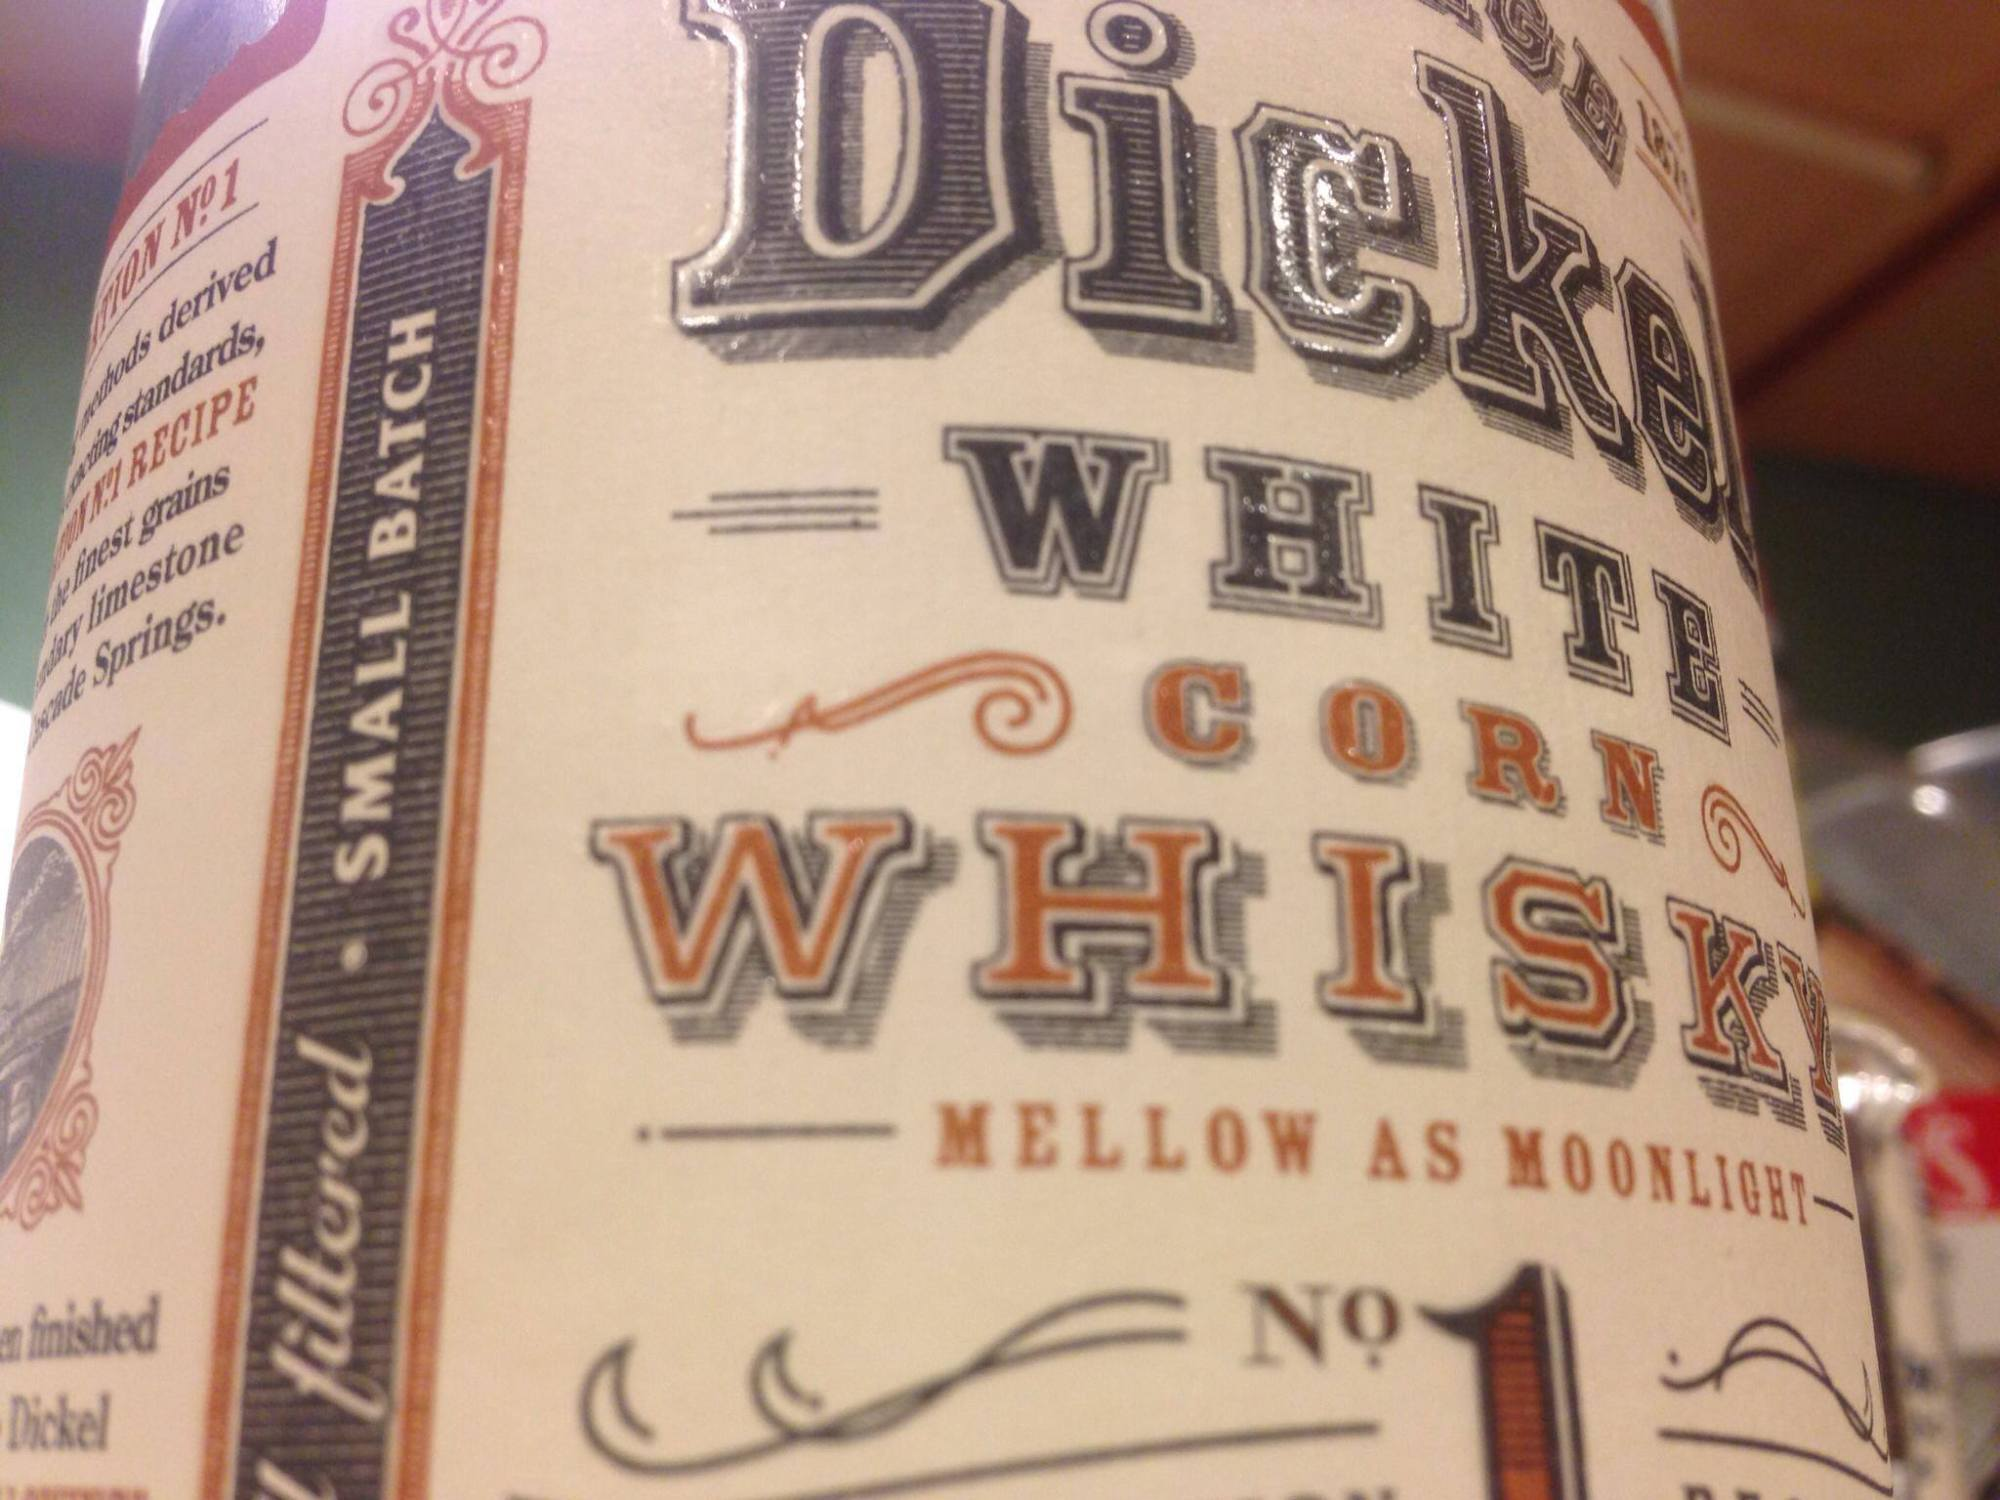 If you only Jack, you don't know Dick... el...